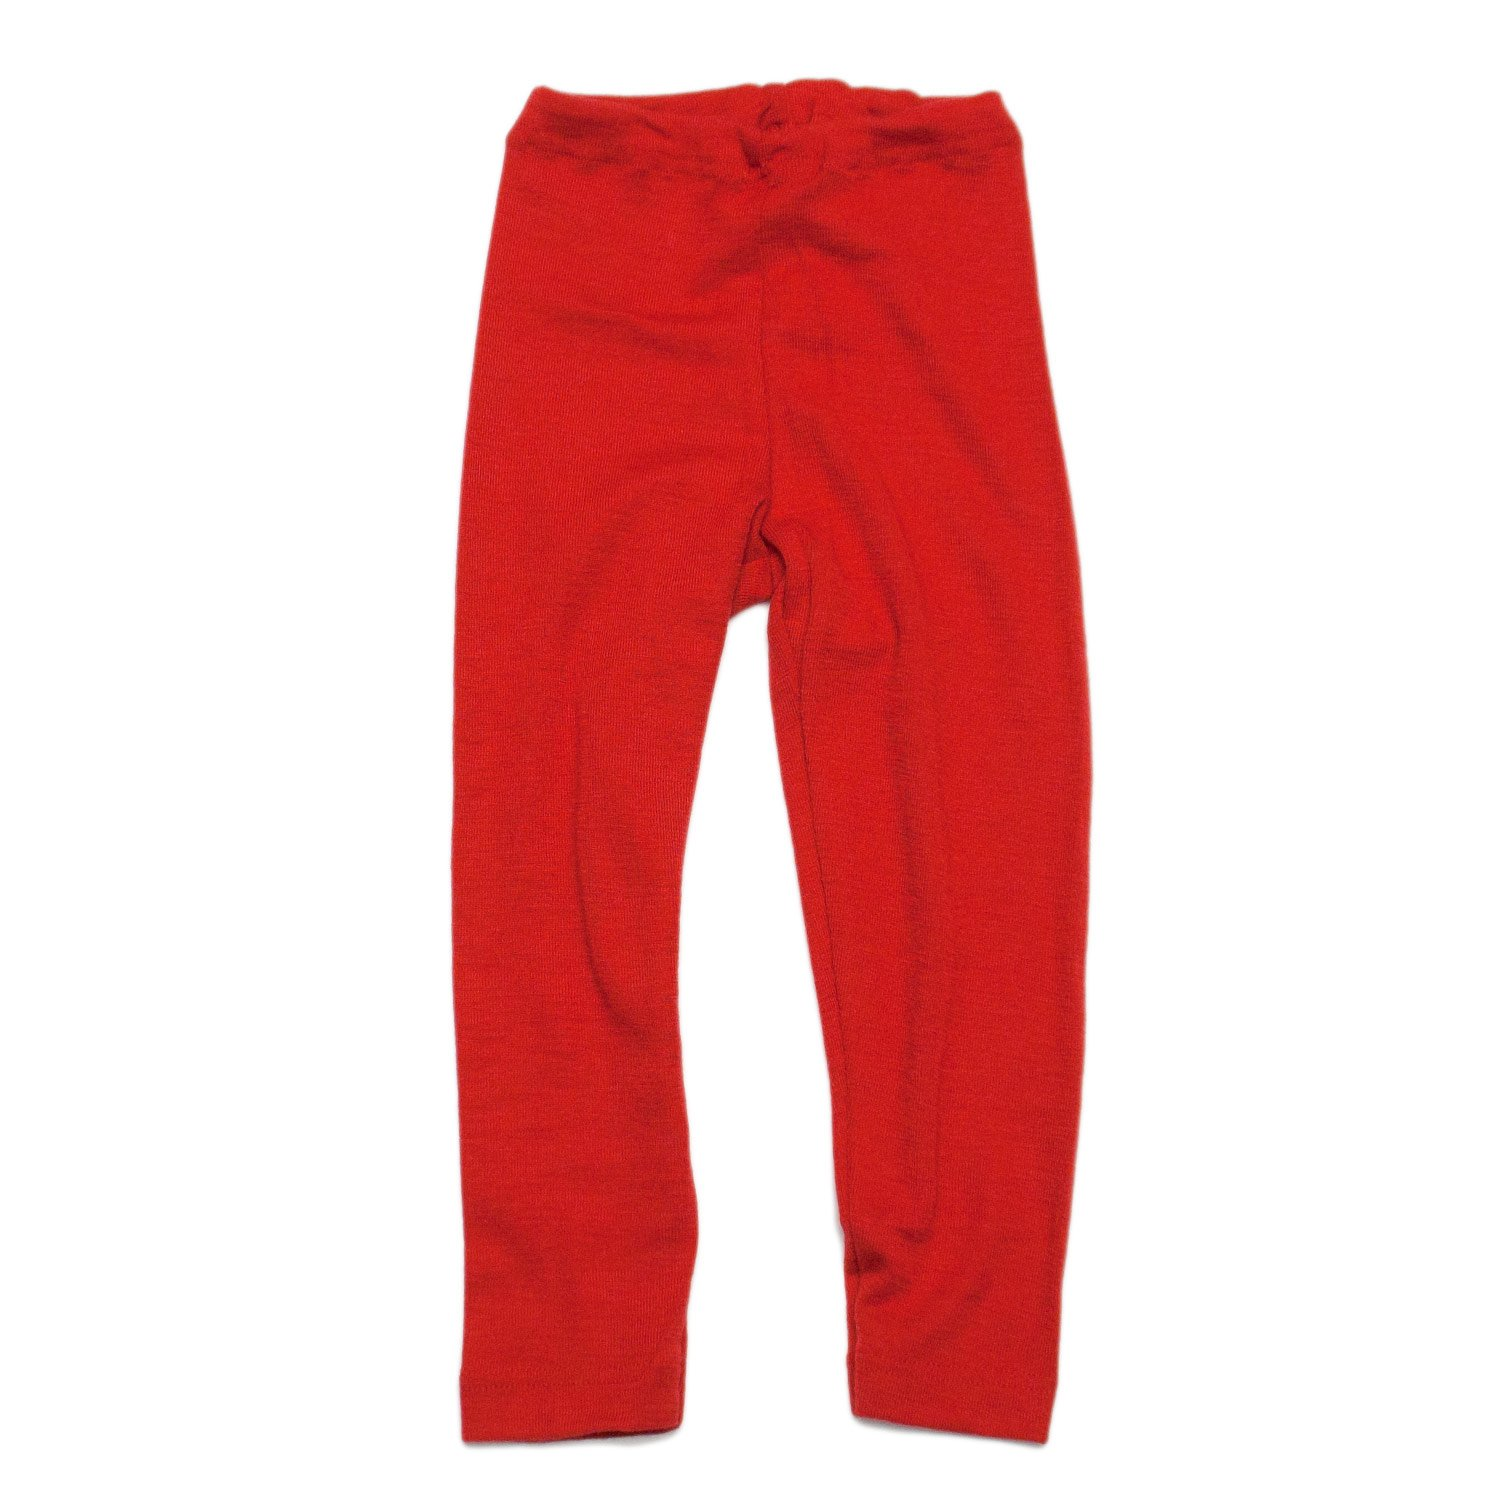 Merino Wool Silk Children Leggings Pants Underwear 404500